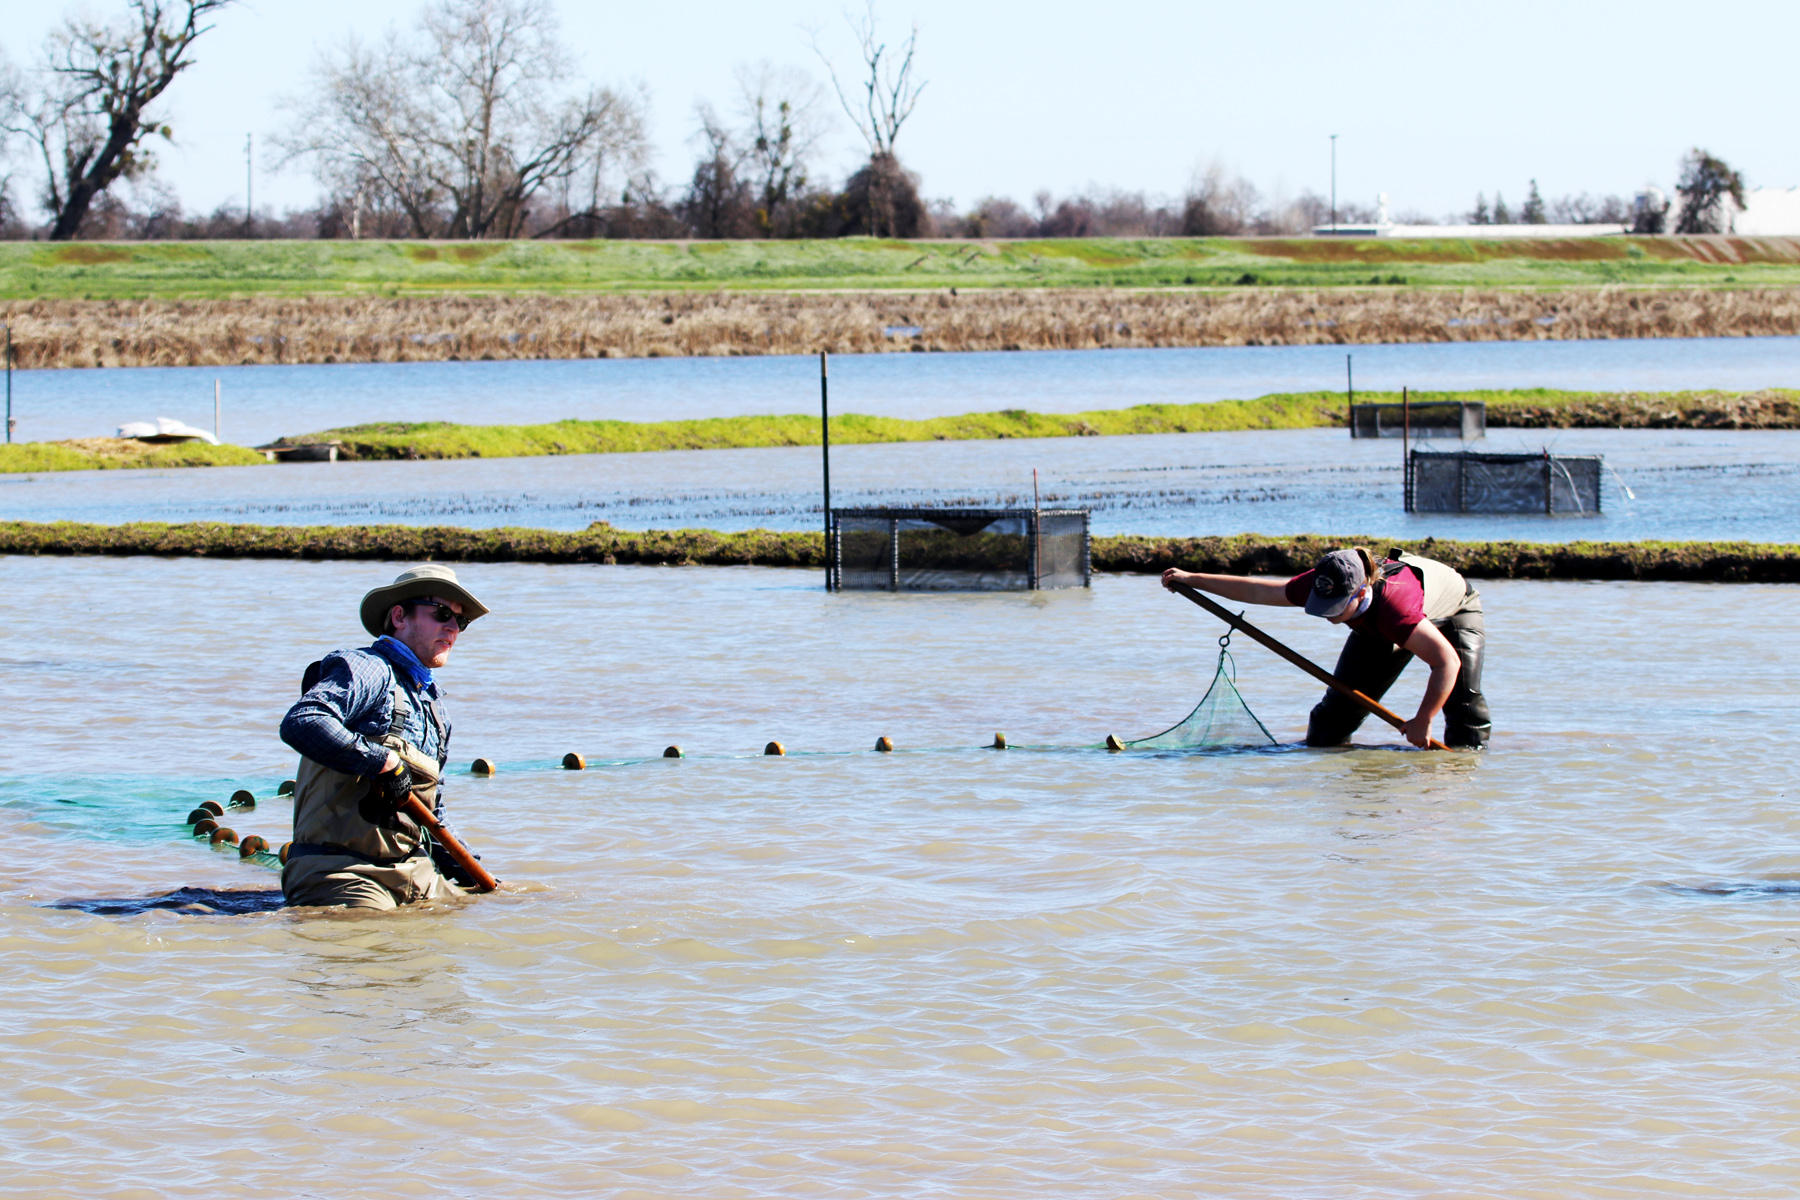 Jordan Colby and Alexandra Wampler (UC Davis) work together on seining efforts to gather the baby salmon.